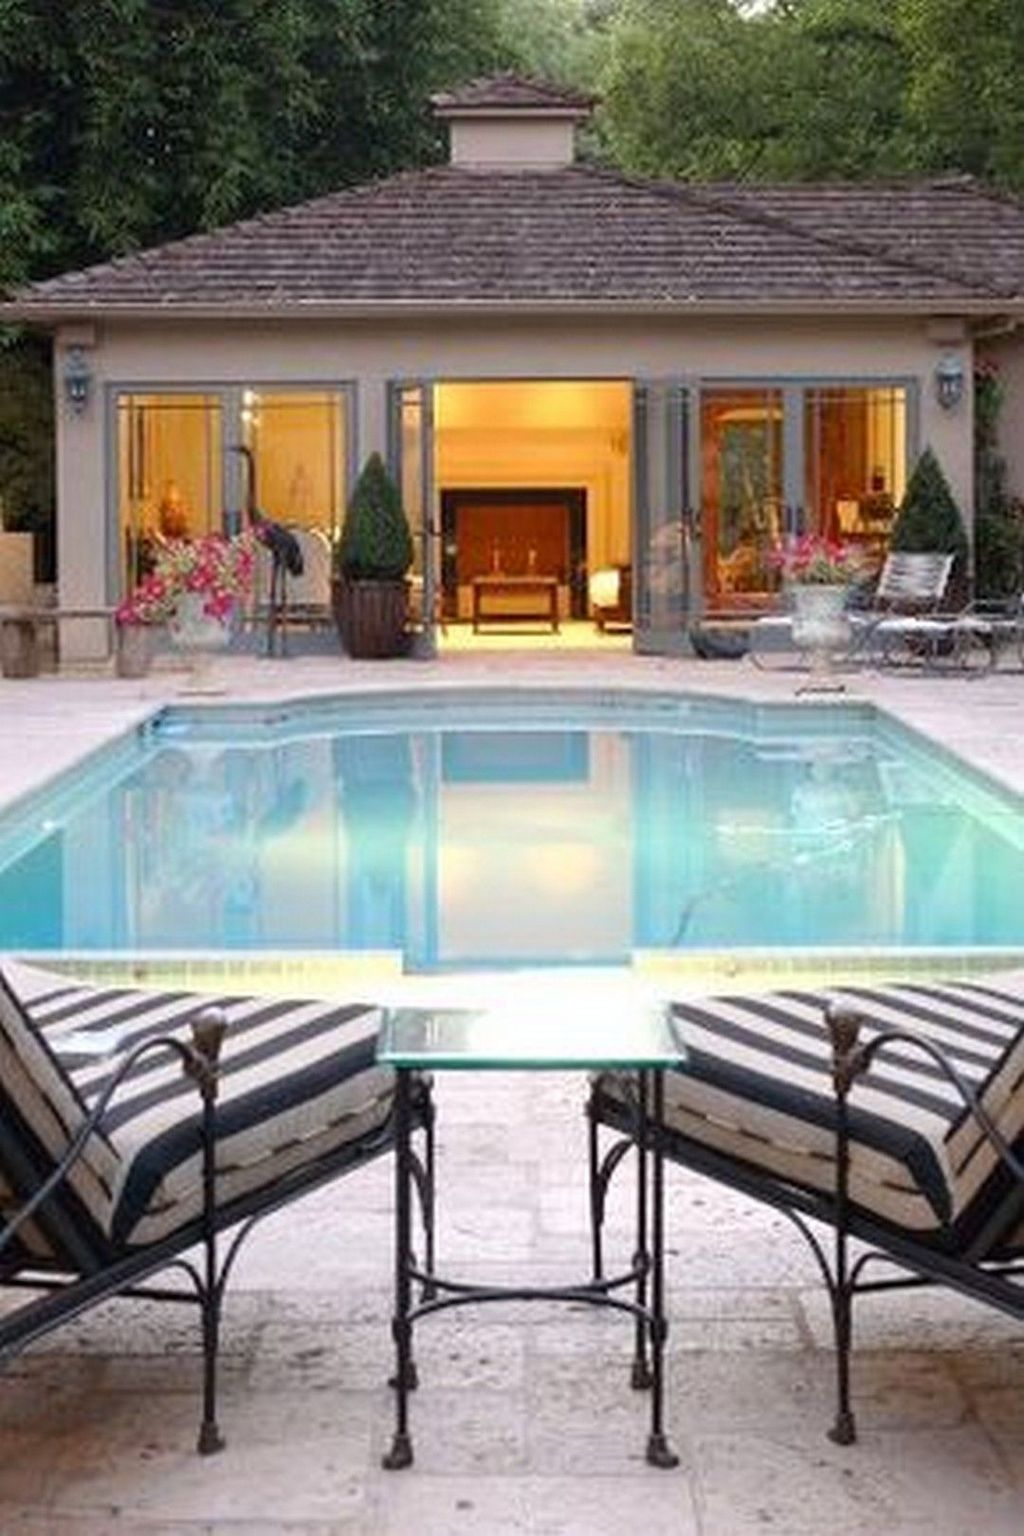 20 Nice Pool House Decorating Ideas On A Budget Small Pool Houses Pool House Decor Pool House Designs